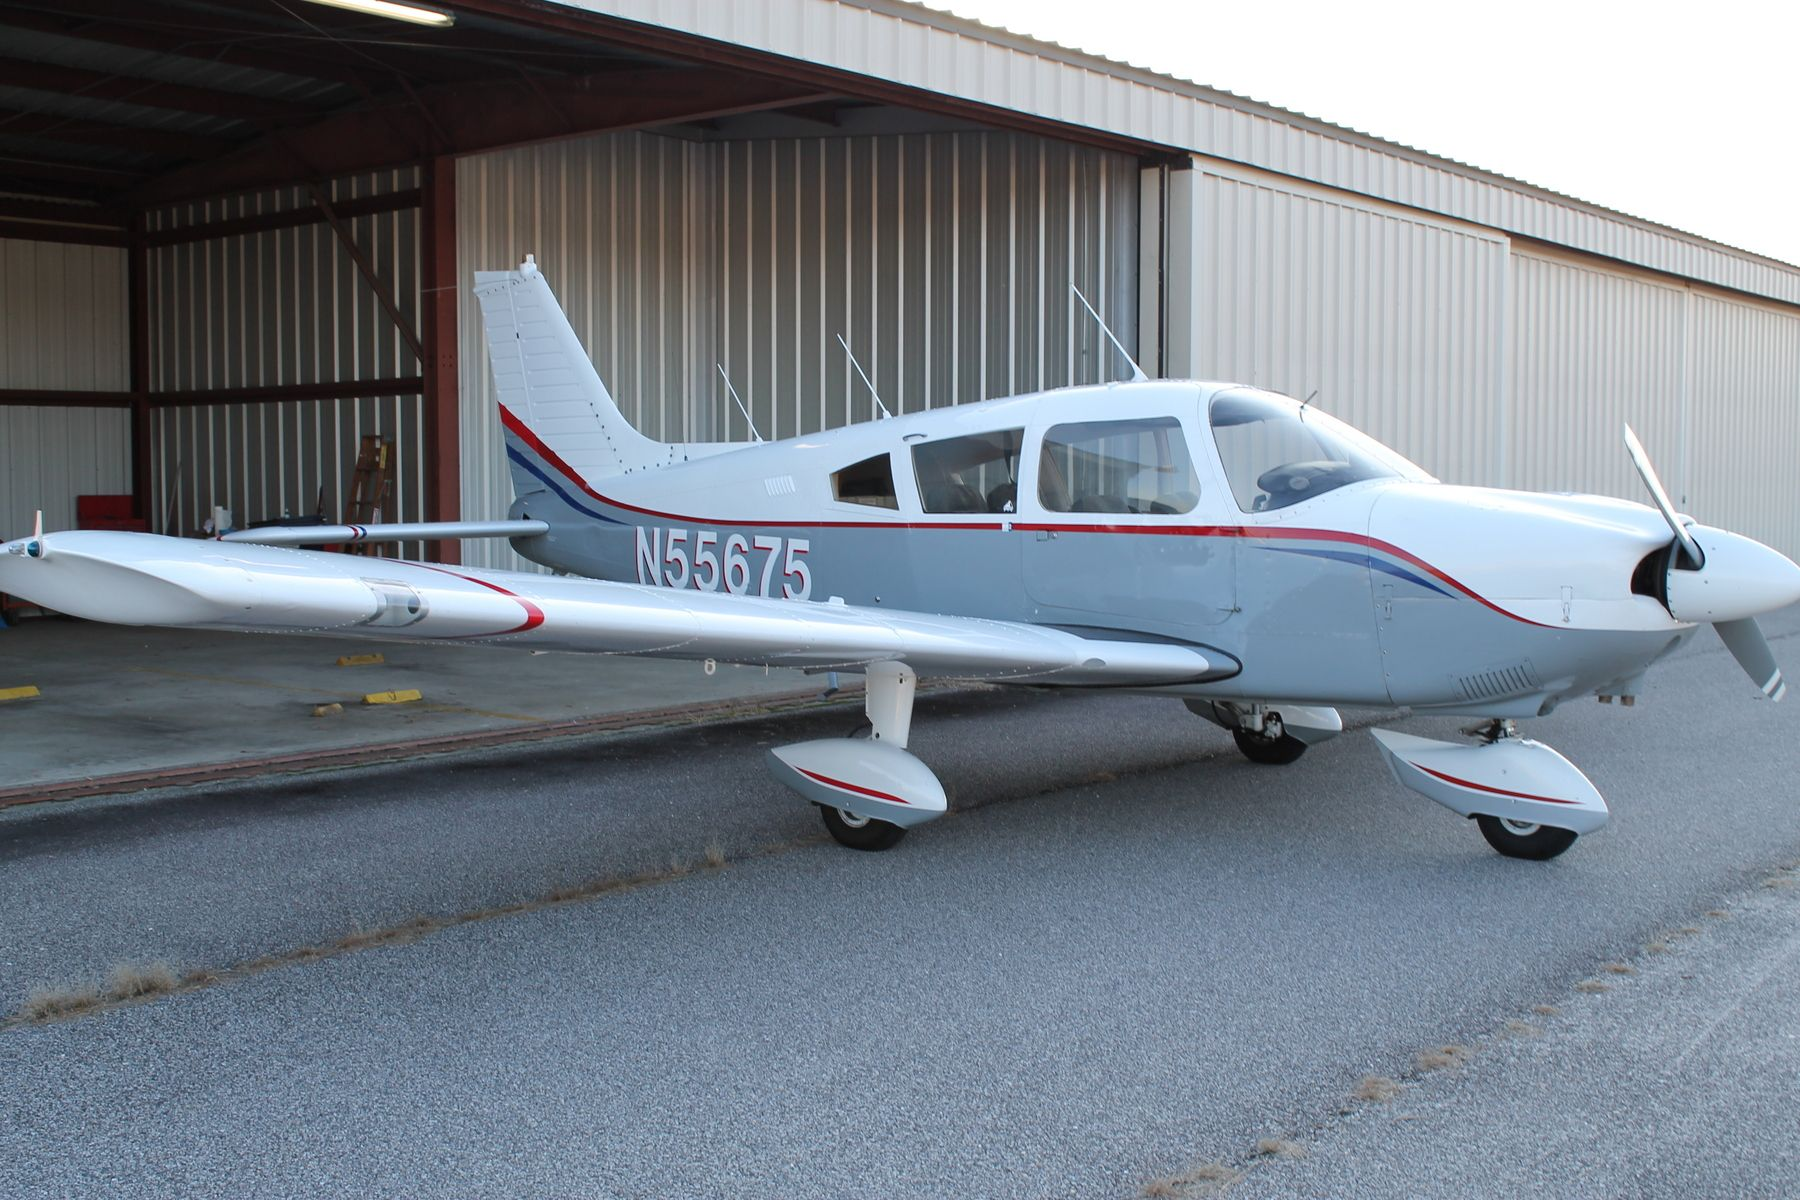 Pin by Chris Mincey on GA | Piper aircraft, Airplane for